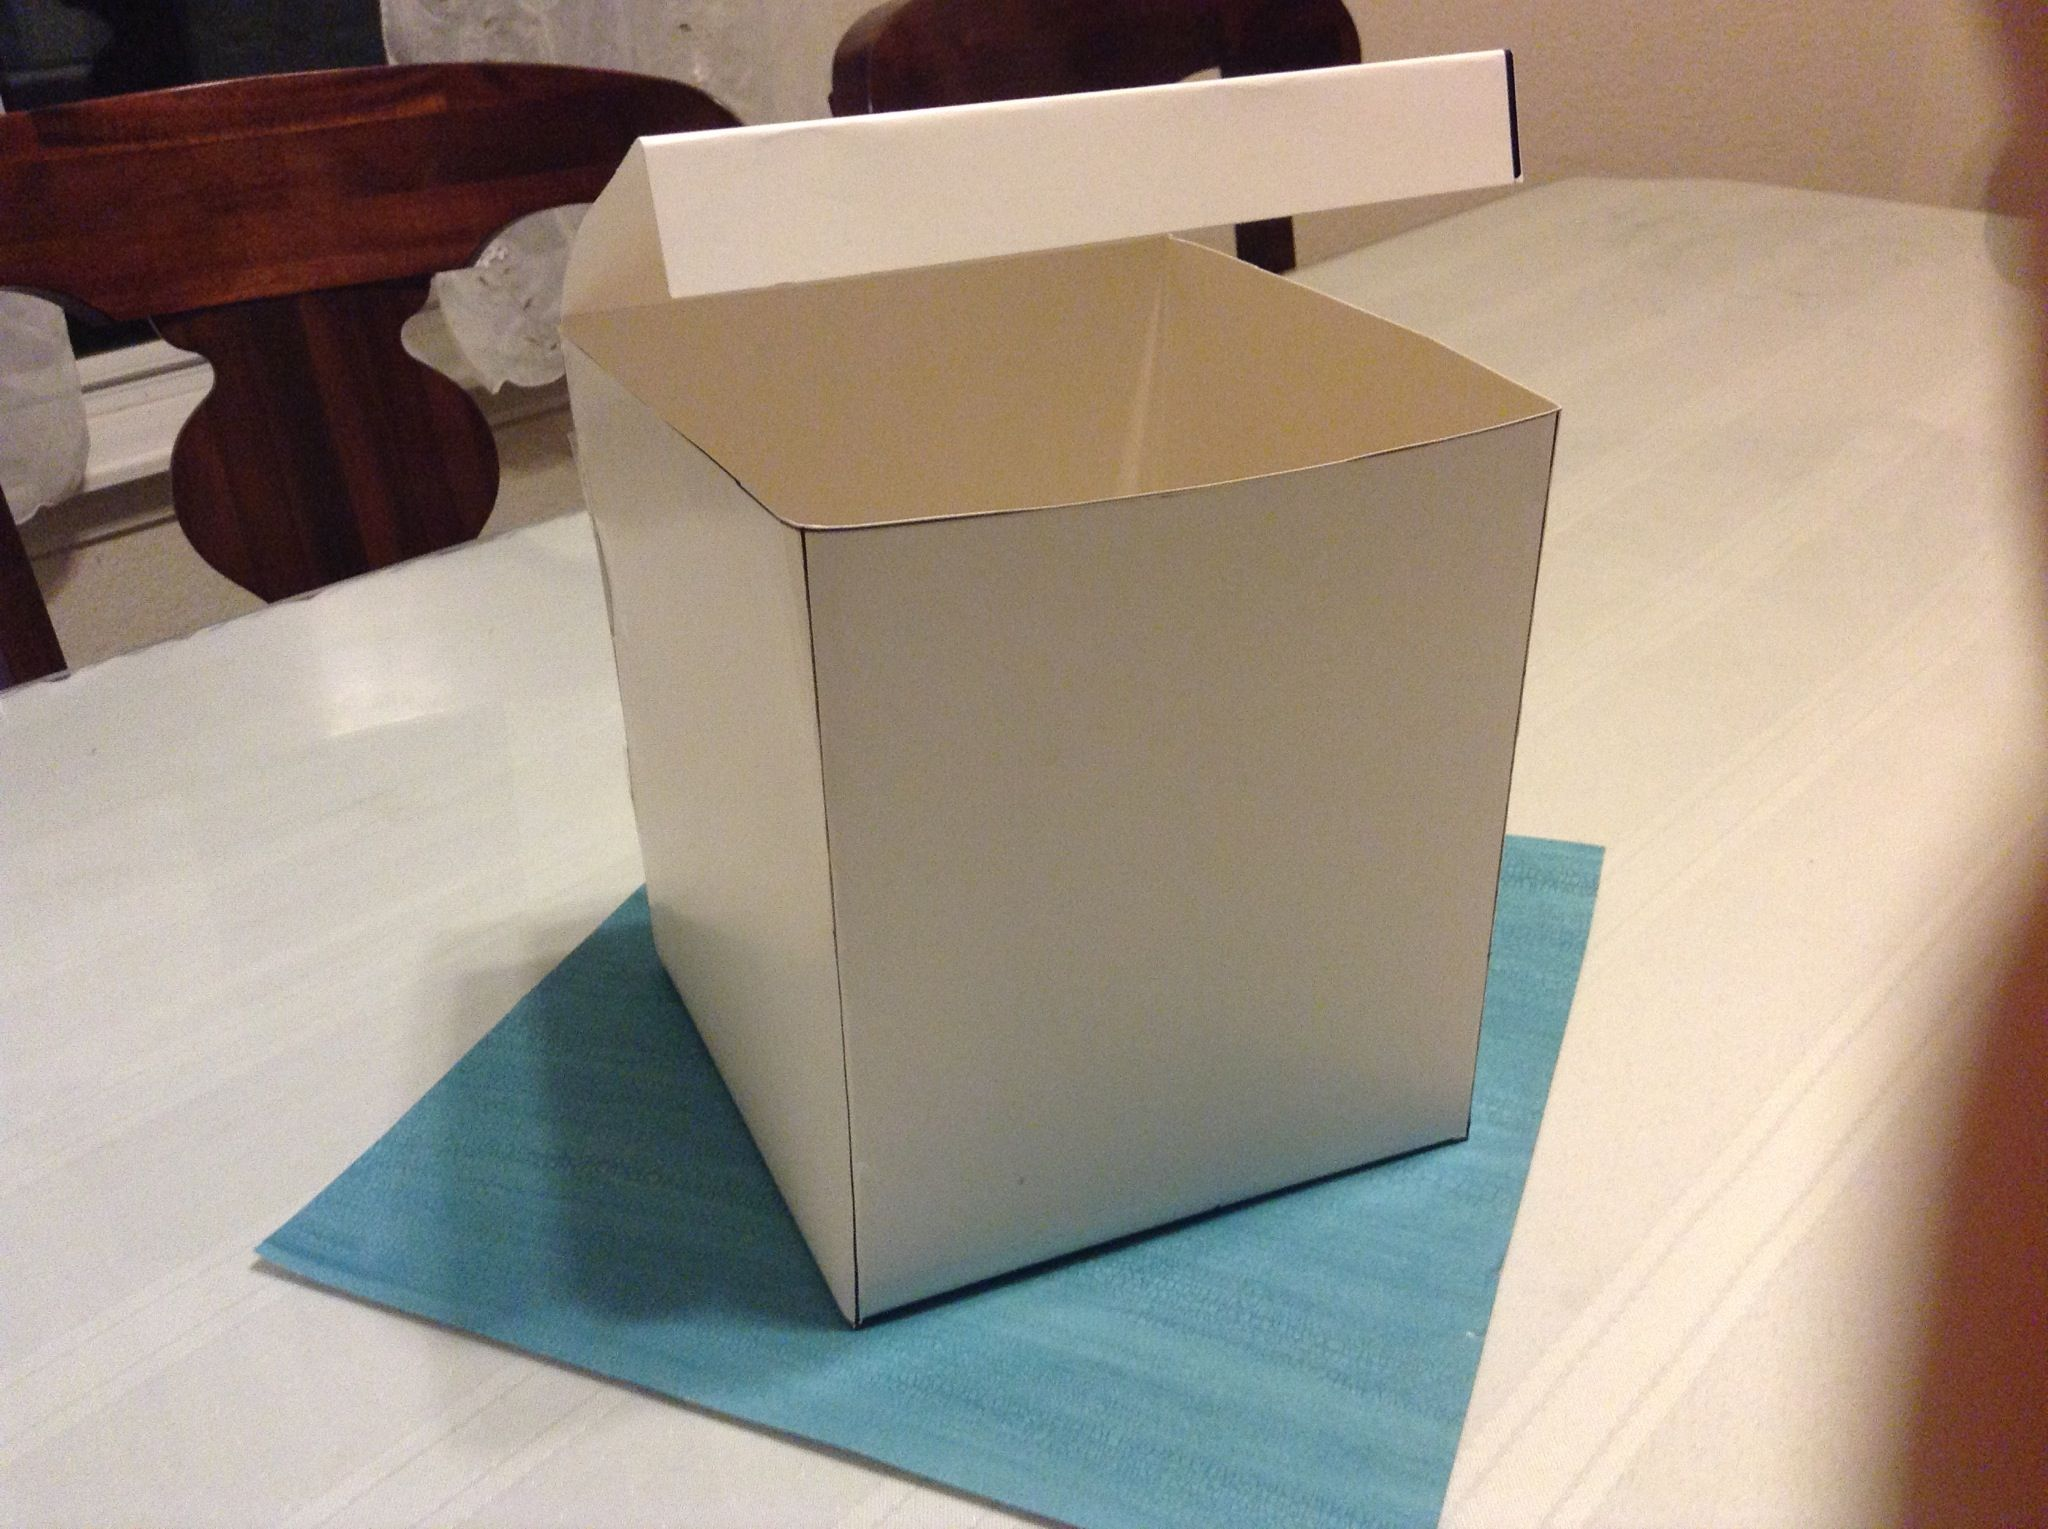 How To Make A Cube From Poster Board Poster Board Paper Cube How To Make Box